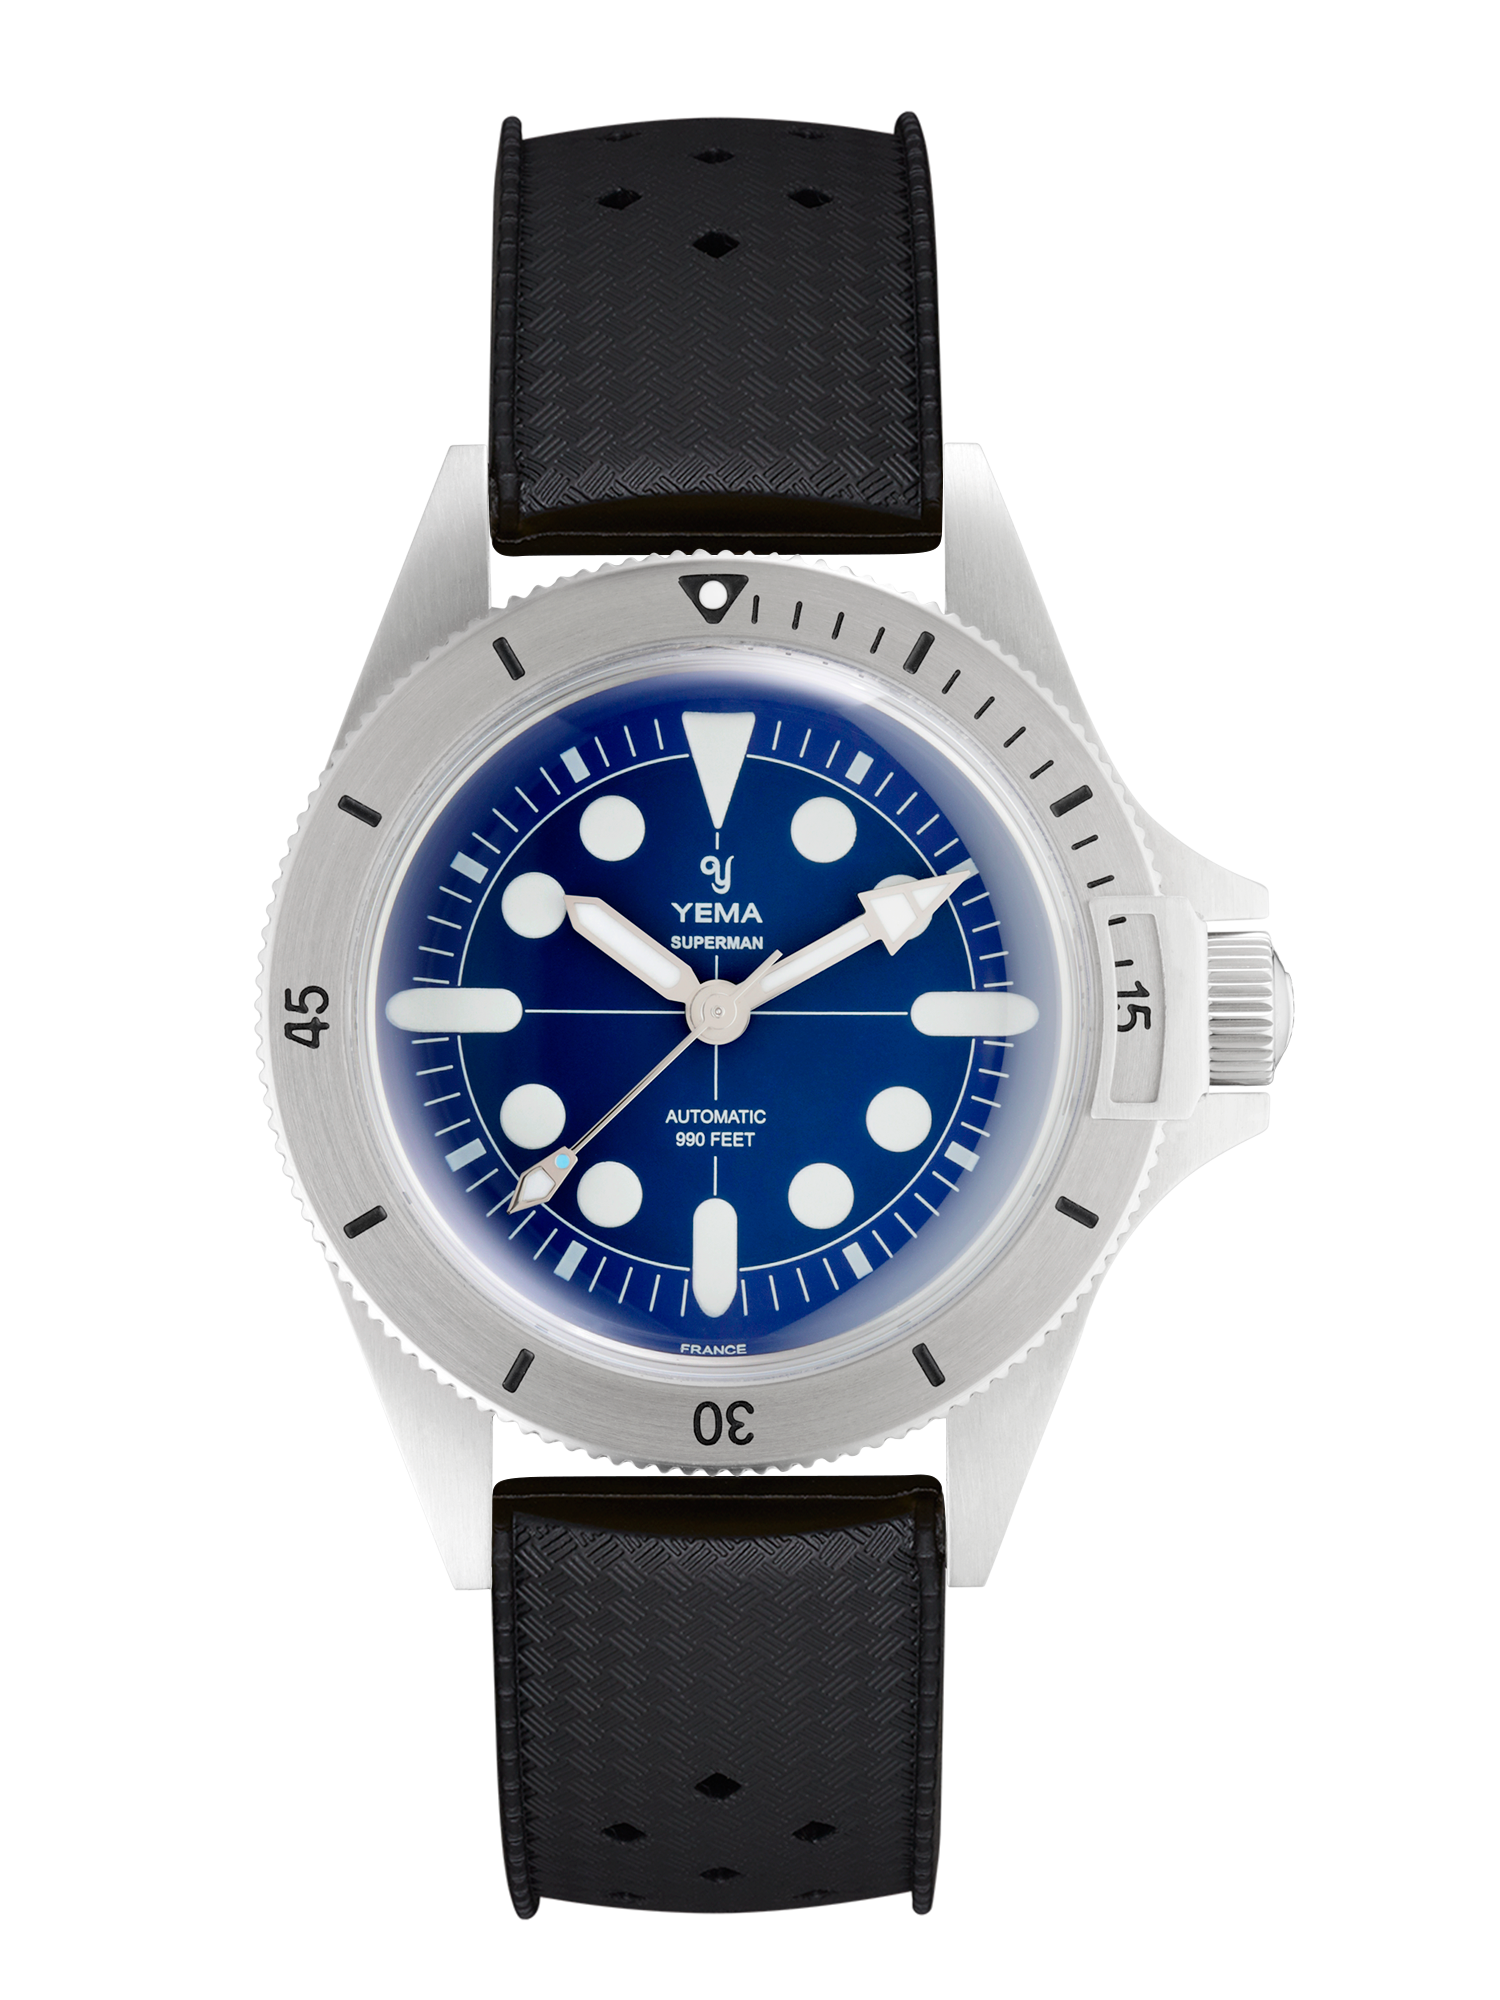 YEMA SUPERMAN MAXI DIAL BLUE, black diving strap